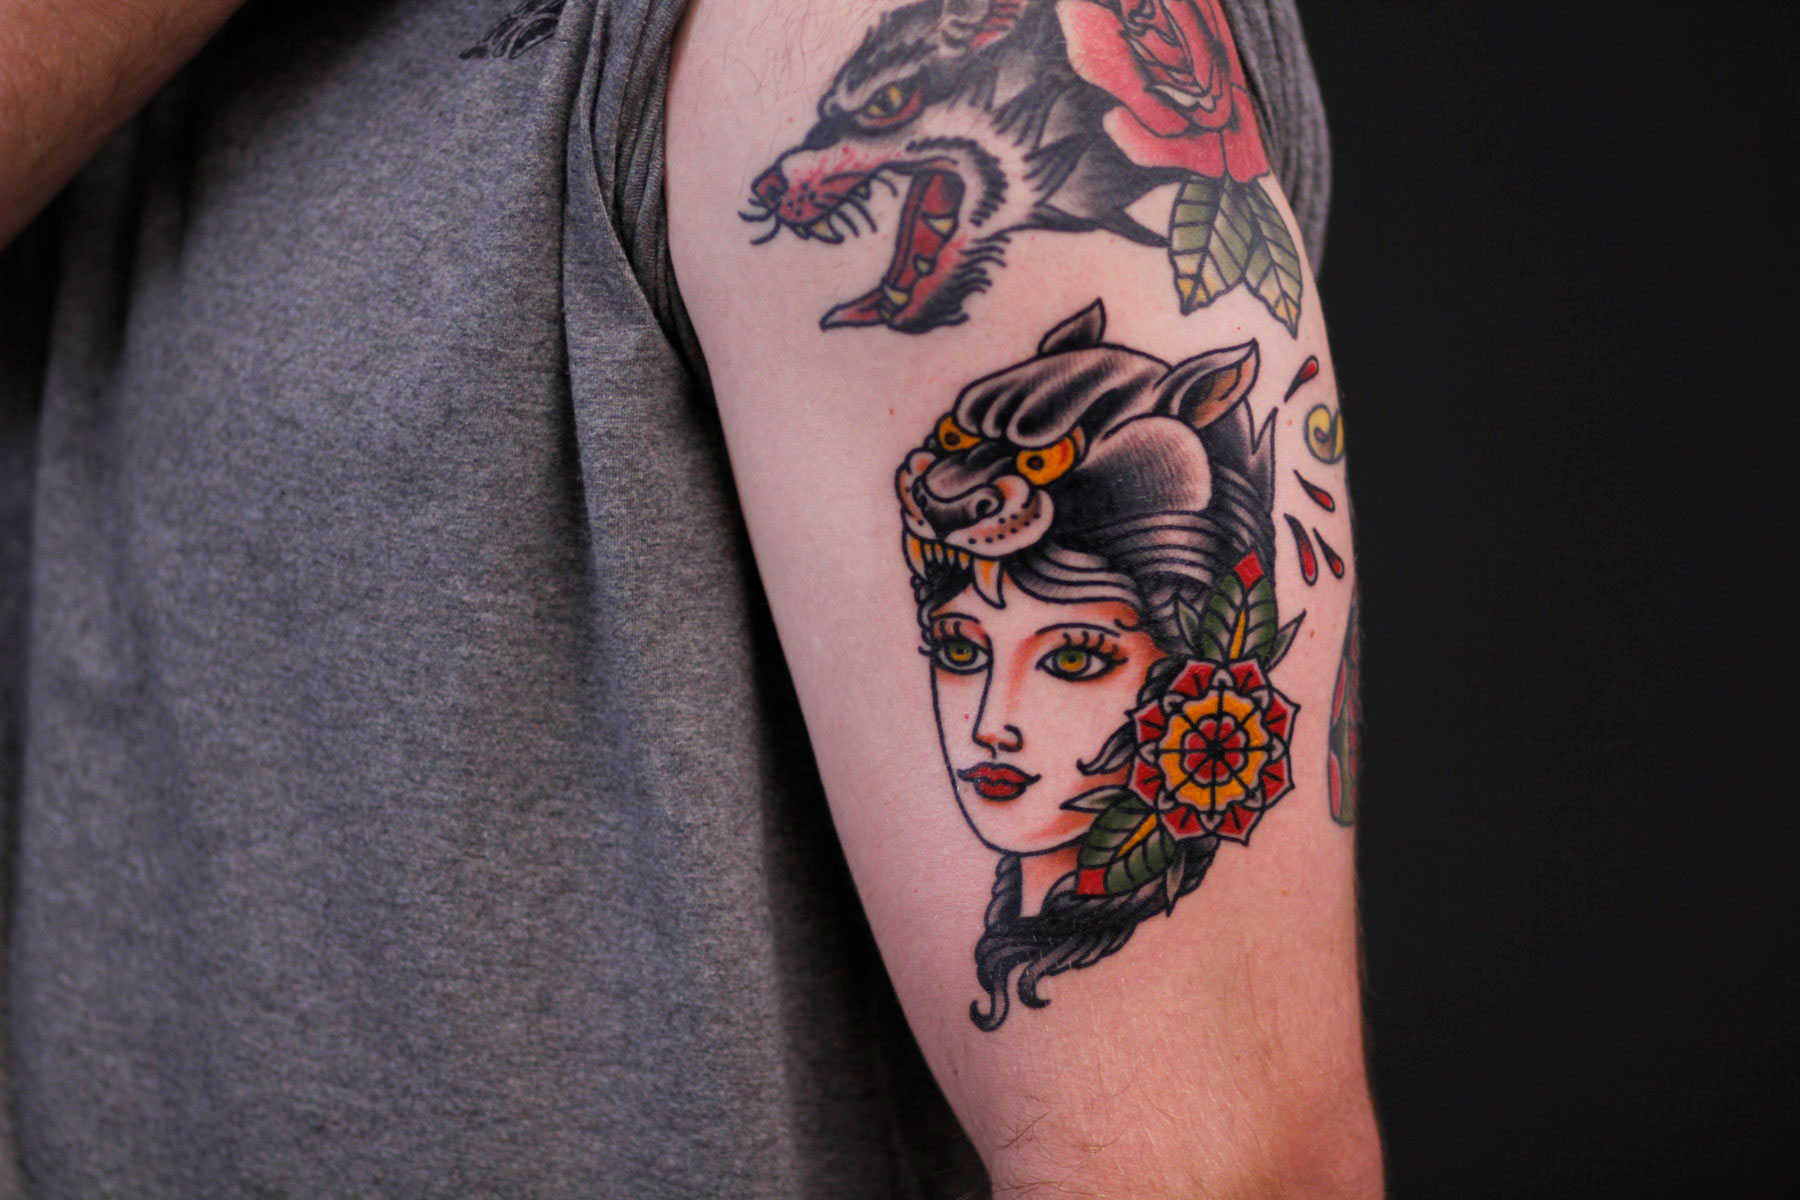 bold classic traditional gypsy lady tattoo with panther on her head and flower beside